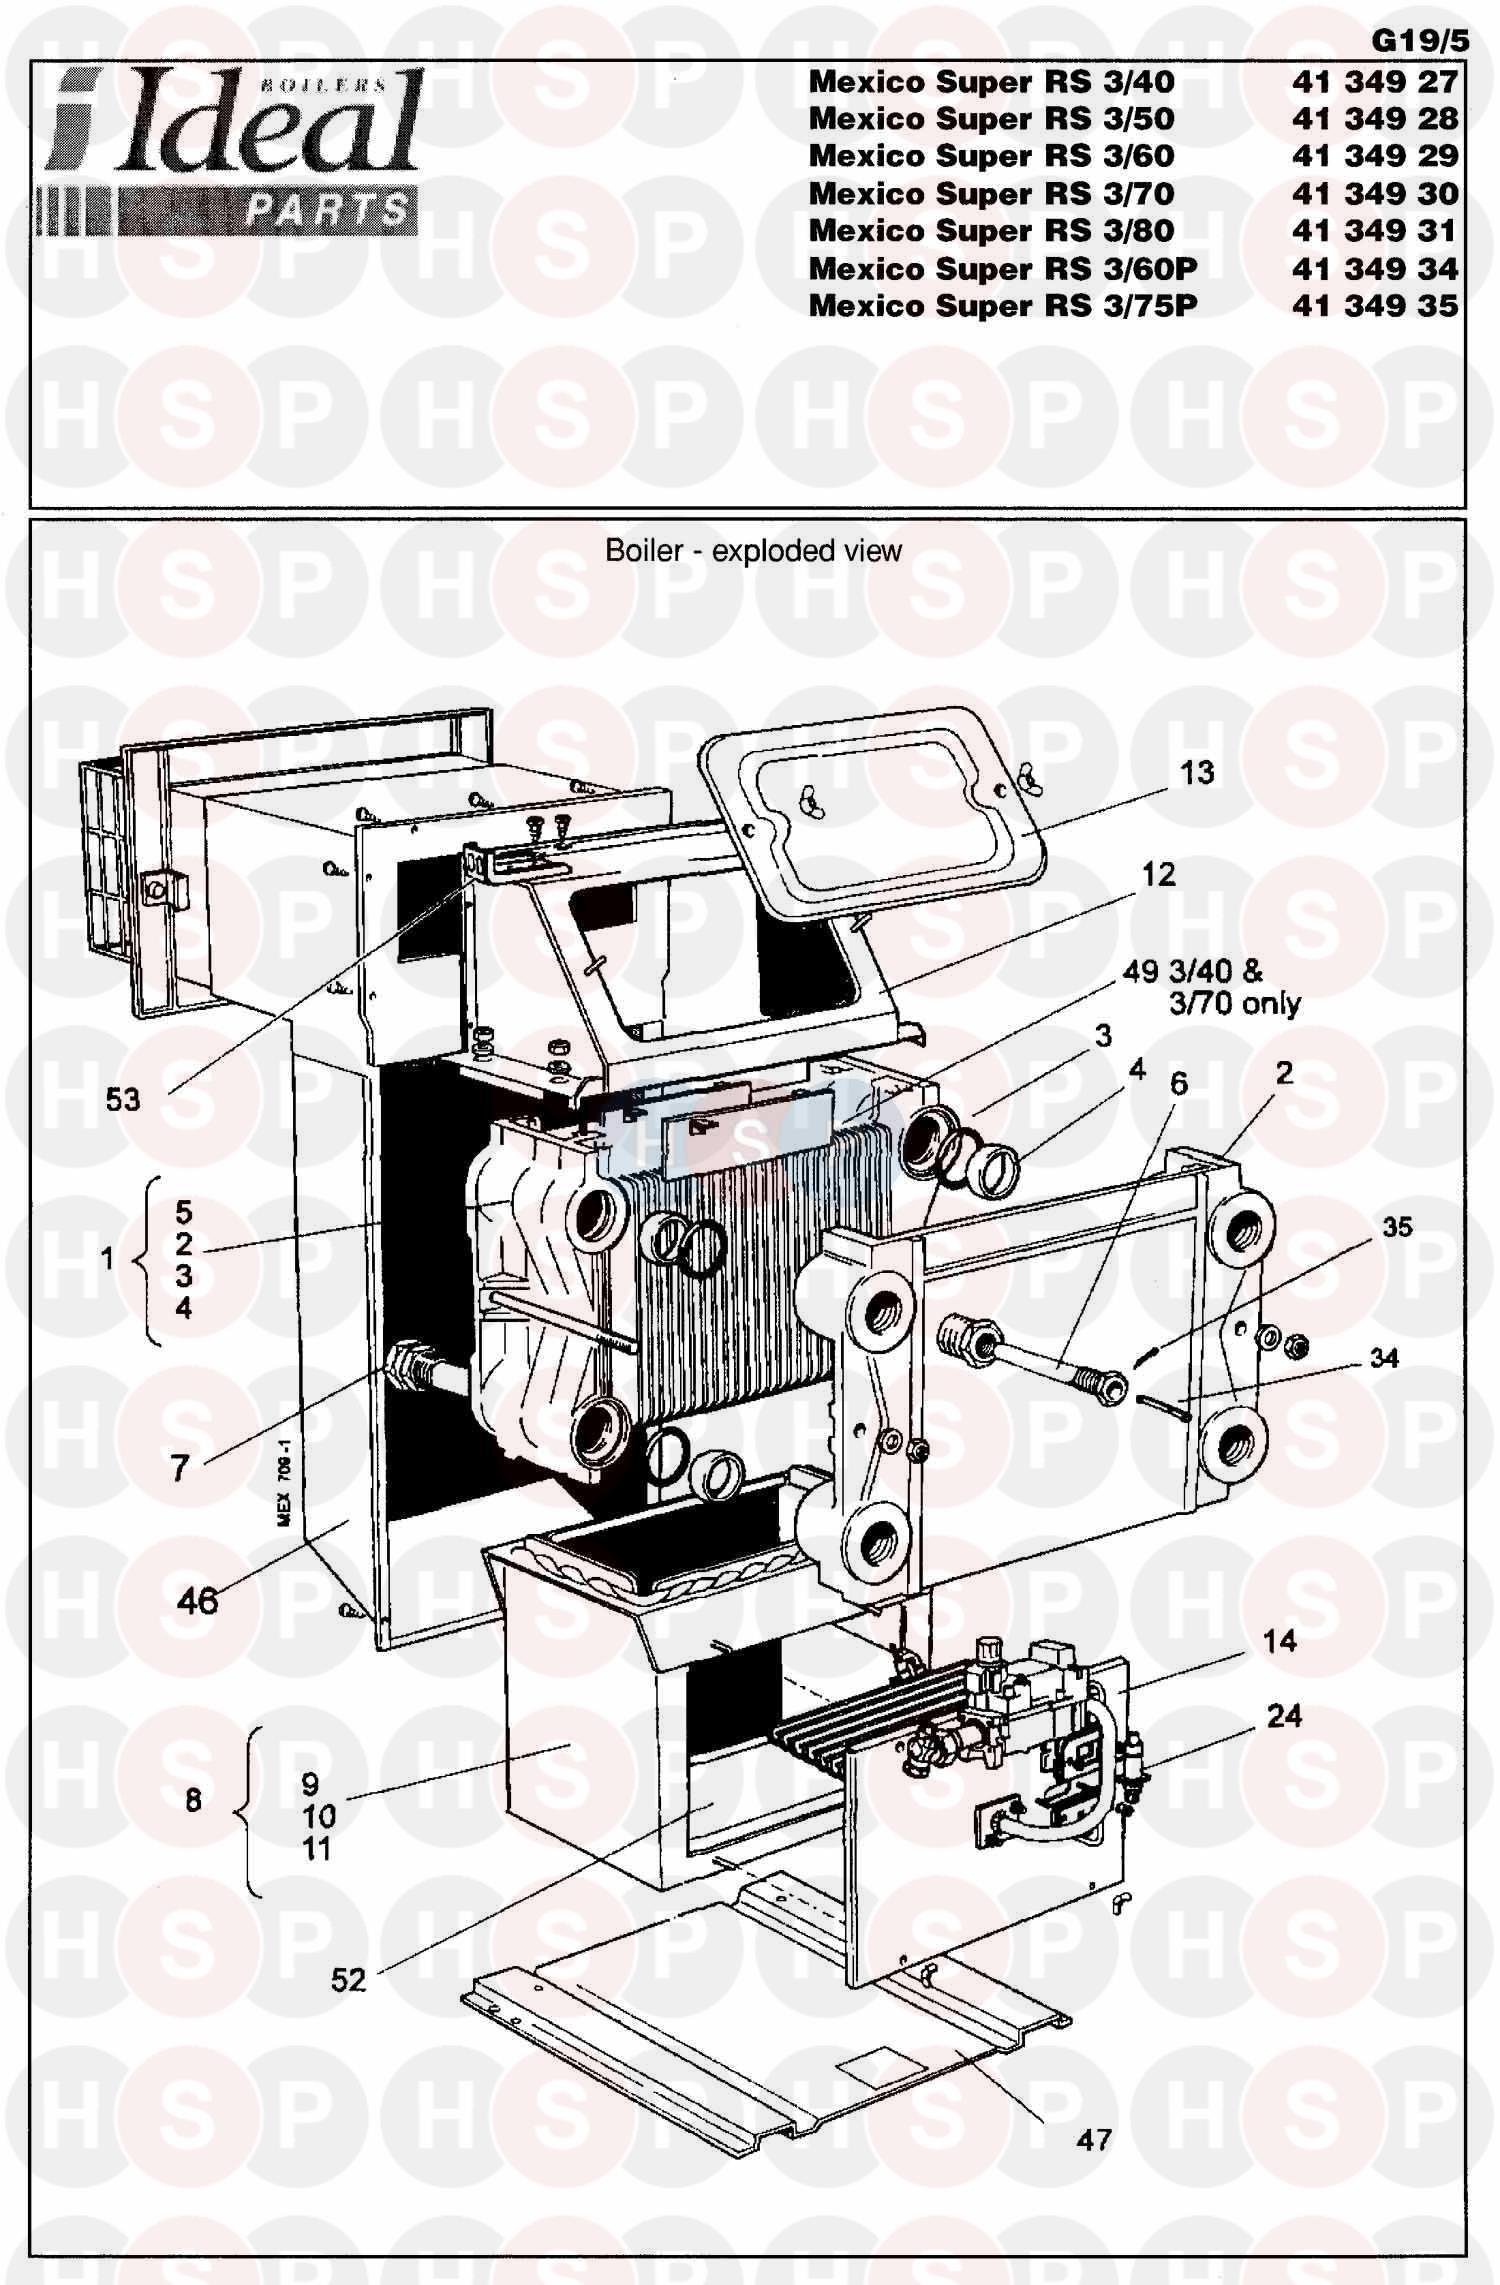 Ideal Mexico Super 3 Rs 100 Appliance Diagram  Boiler